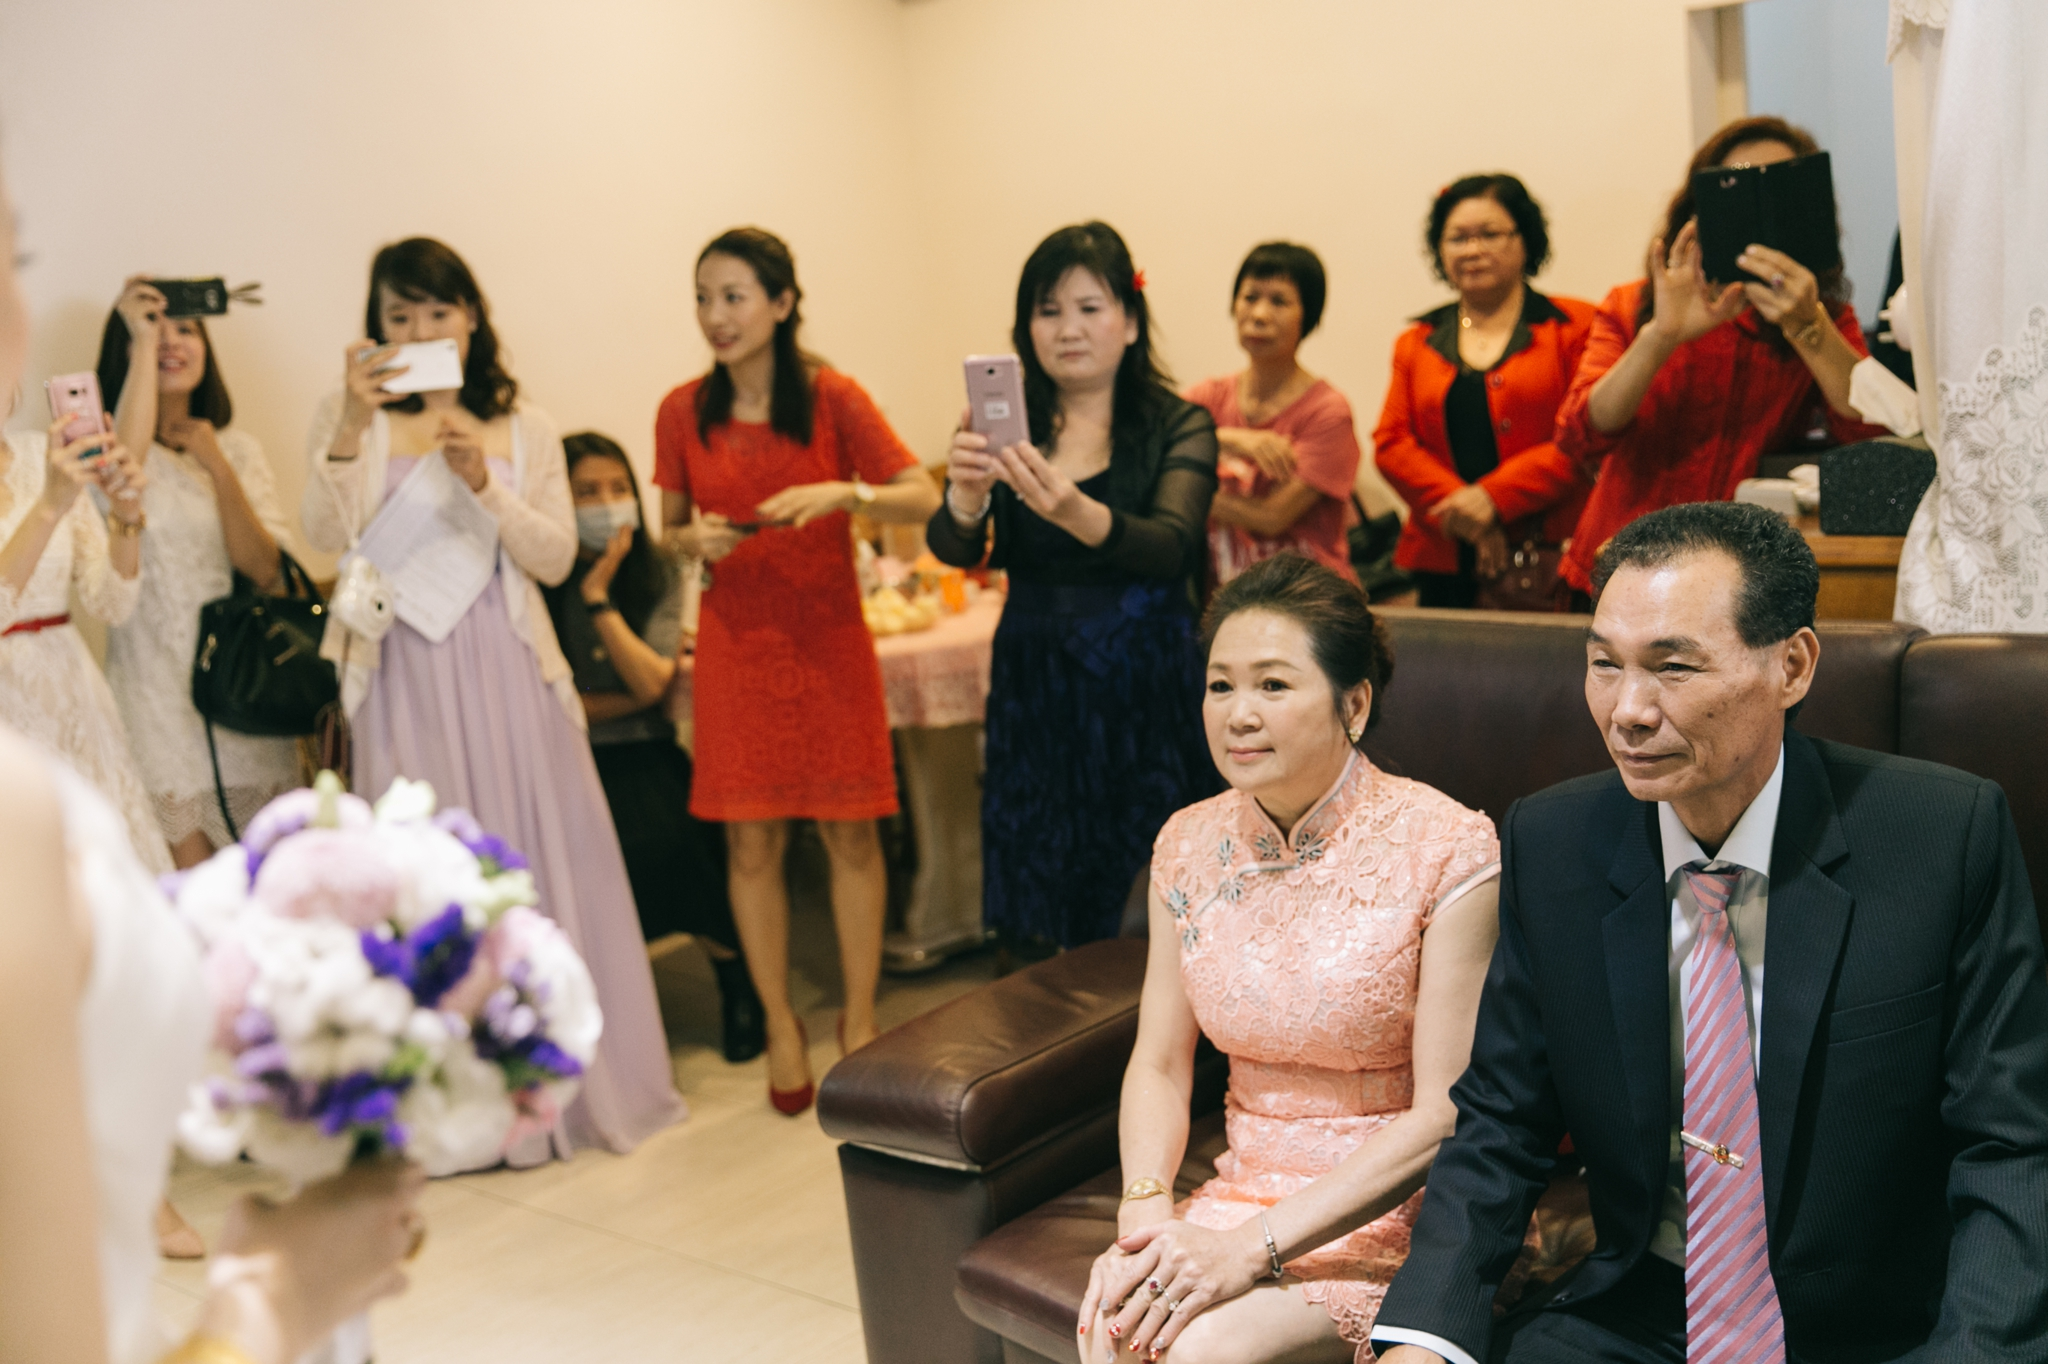 Keddy+Richard-wedding-新莊頤品飯店-090.jpg